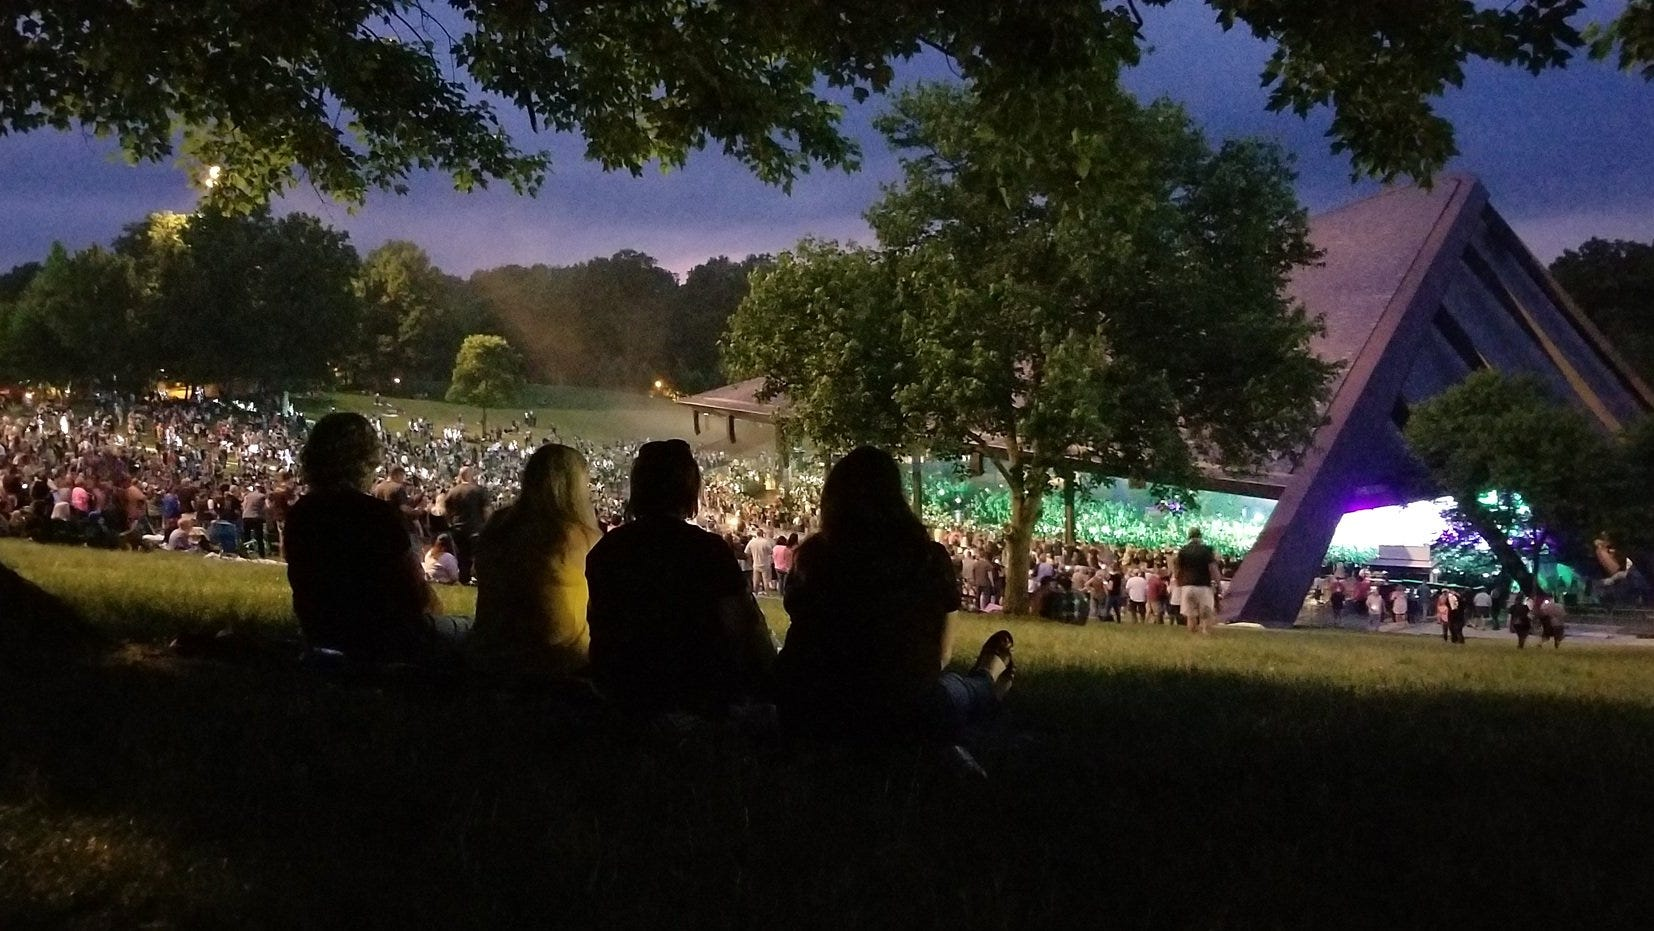 Concert goers listen to the rock band Poison at Blossom Music Center on Tuesday June 13, 2018 in Cuyahoga Falls, Ohio. [Mike Cardew/Beacon Journal File]